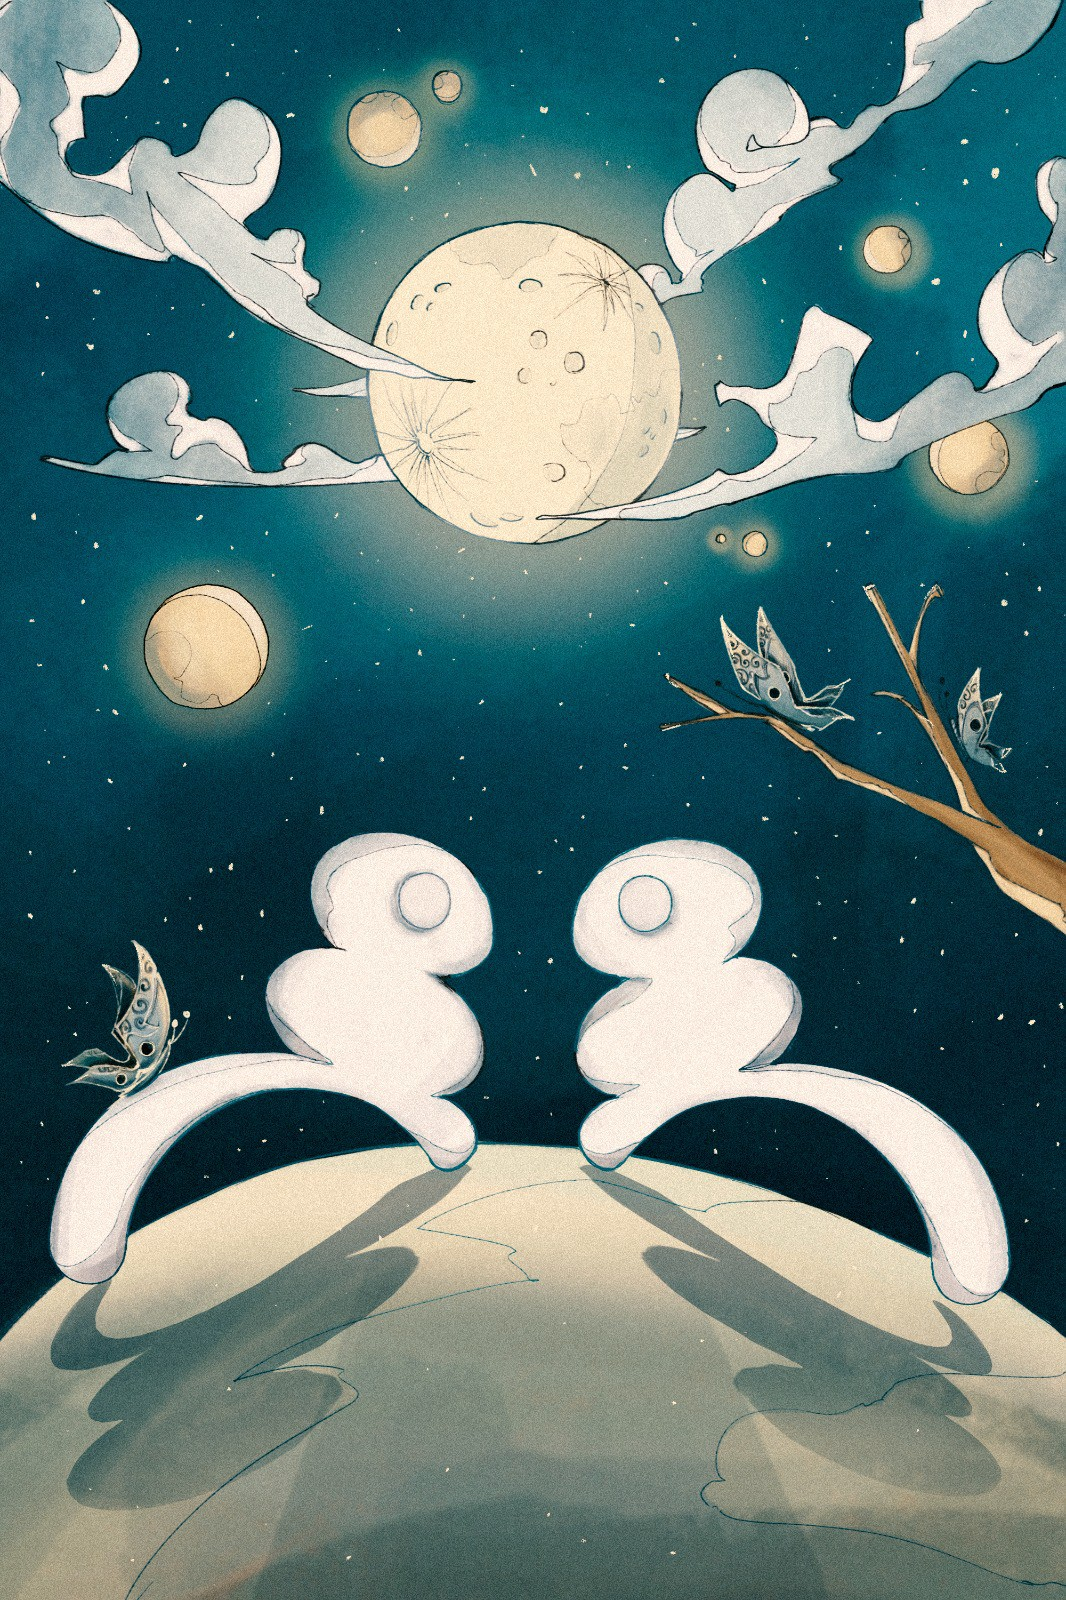 Two magical creatures, called Pitch, meet in a realm of moons and butterflies